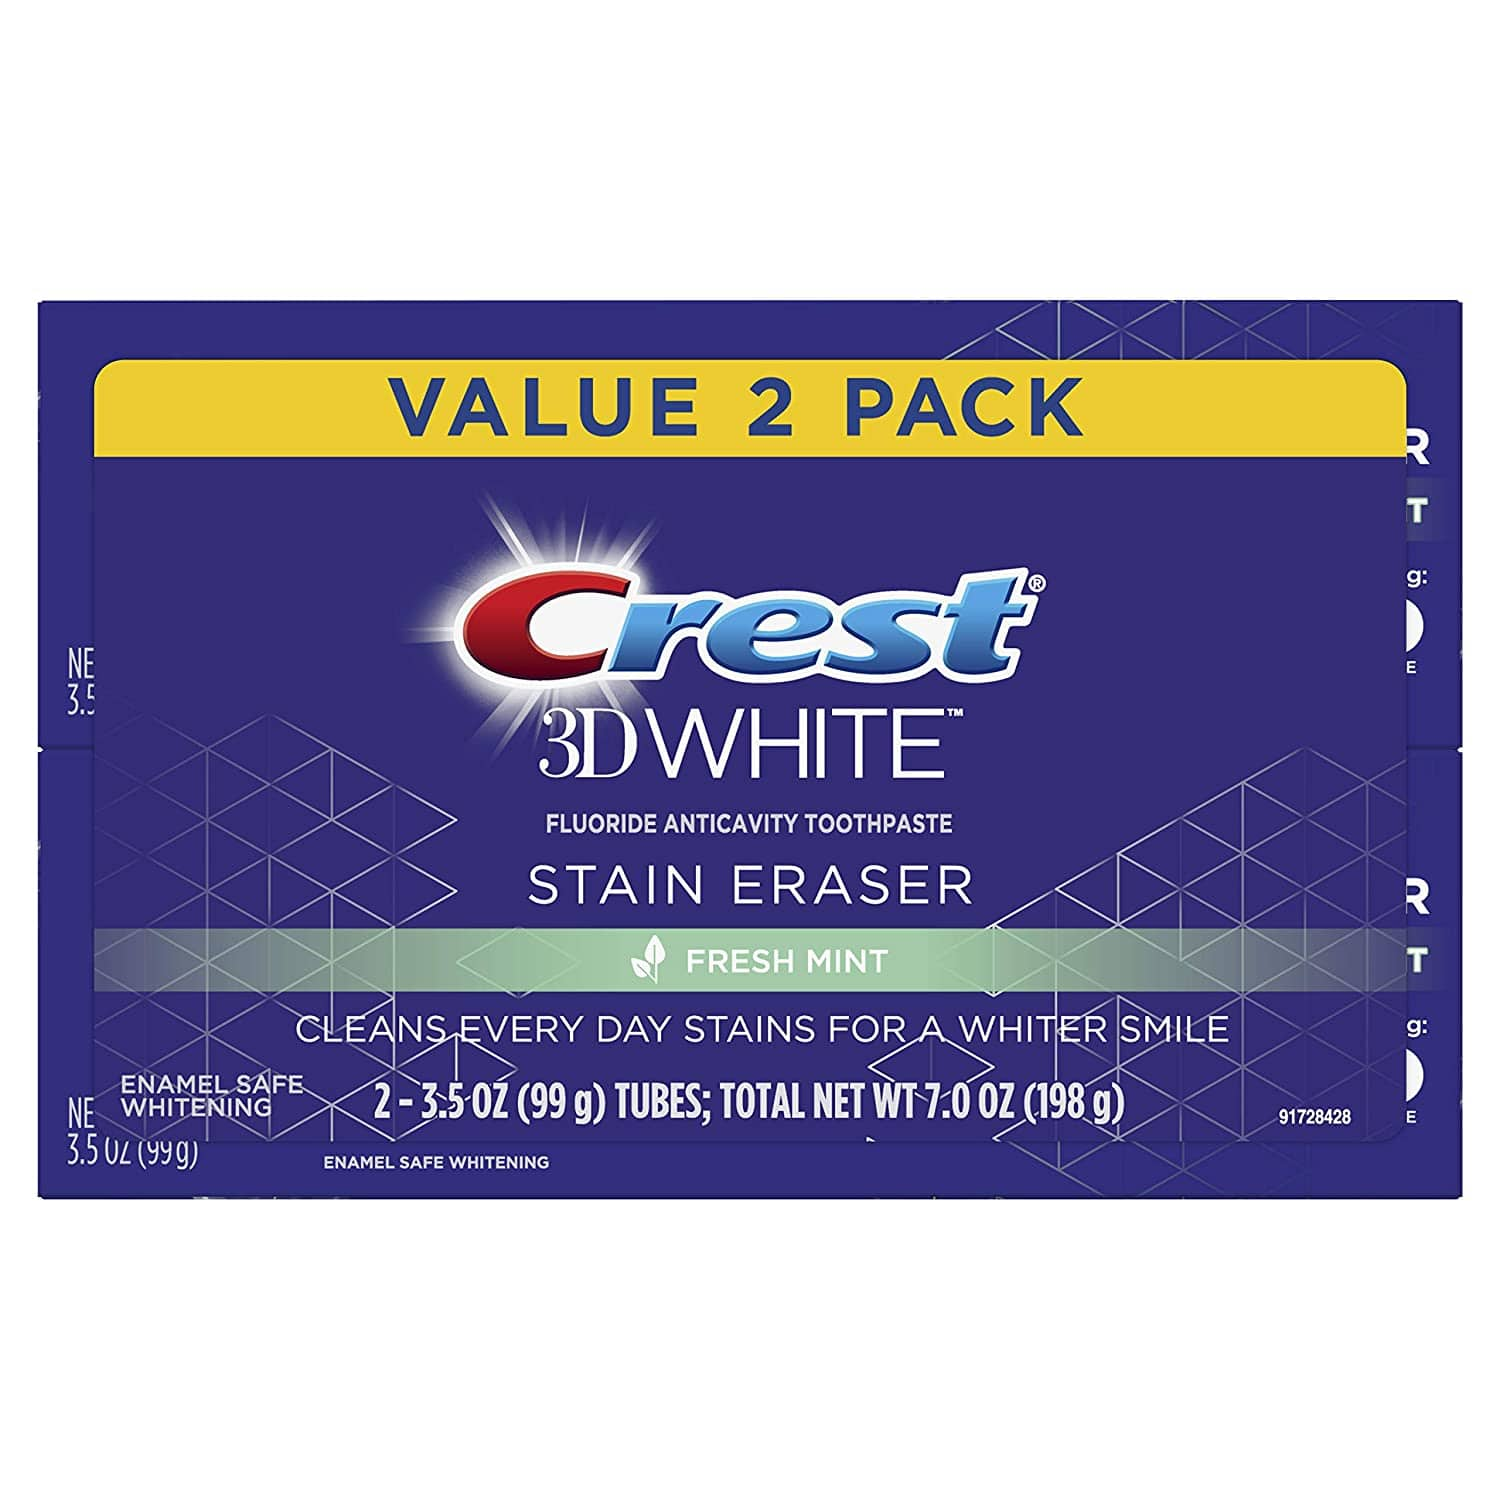 2-Pack 3.5oz Crest 3D White Stain Eraser Whitening Toothpaste (Fresh Mint) $3.50 w/ S&S + Free Shipping w/ Prime or on orders $25+